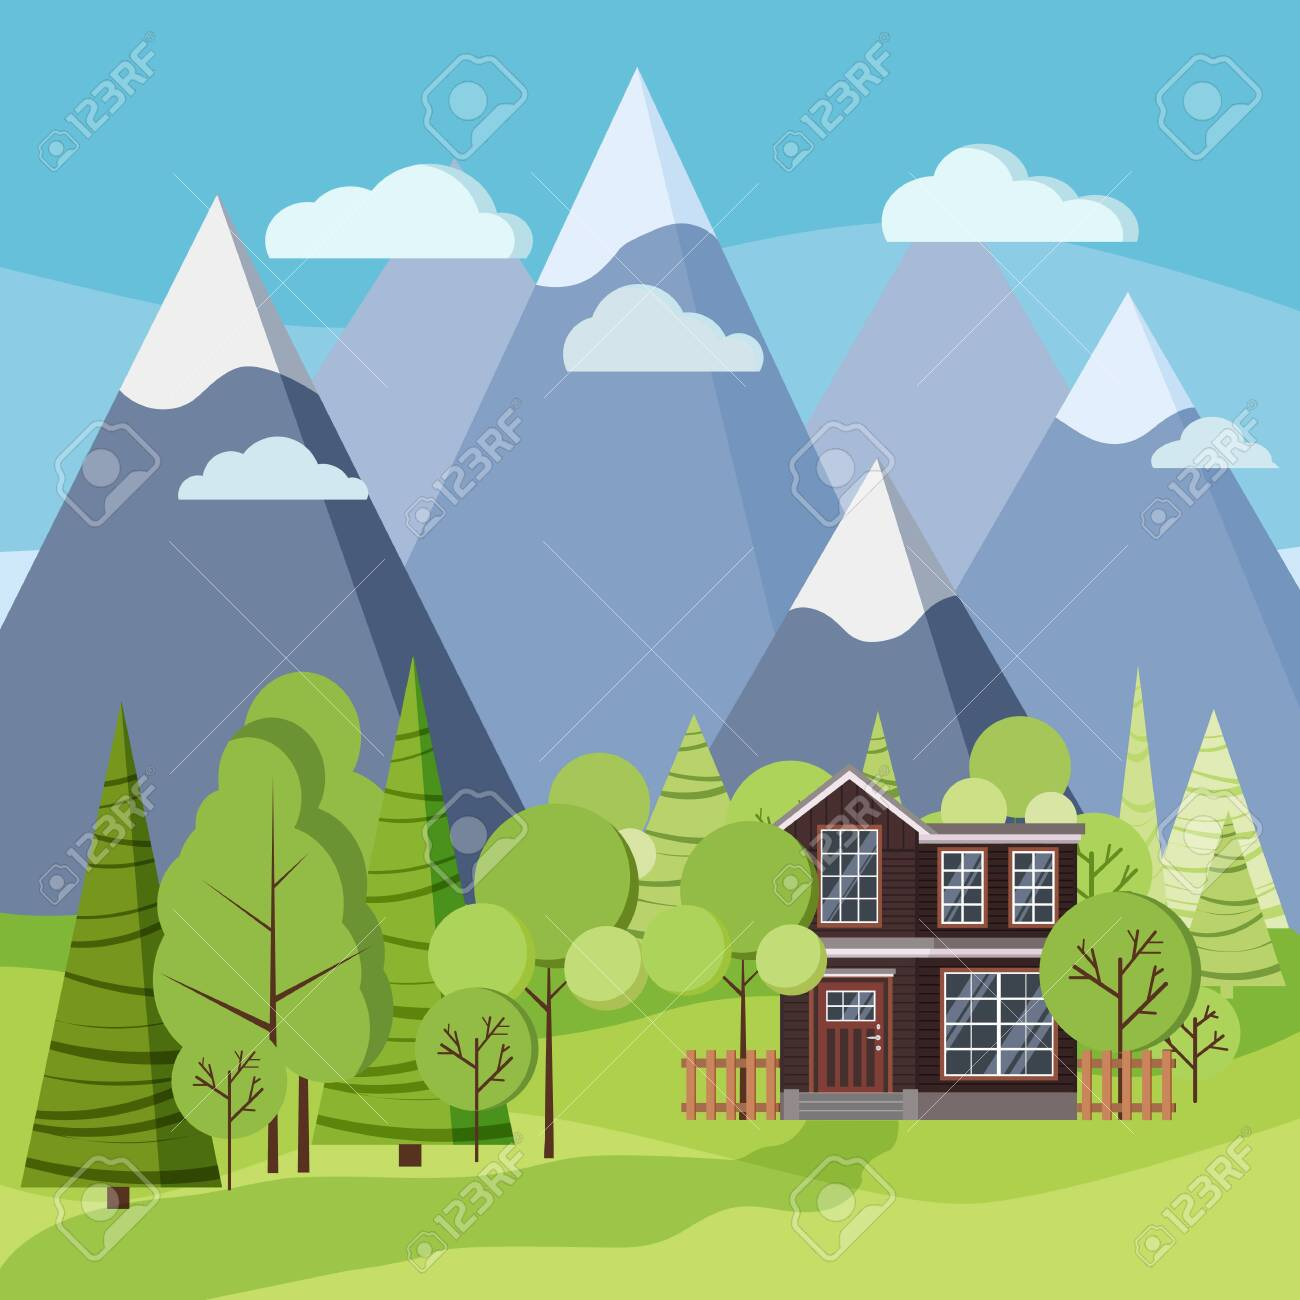 Spring or summer landscape scene with country two-story house with a fence, green trees, spruces, fields, clouds, mountains in flat cartoon style. Summer nature scene vector background illustration. - 126428660